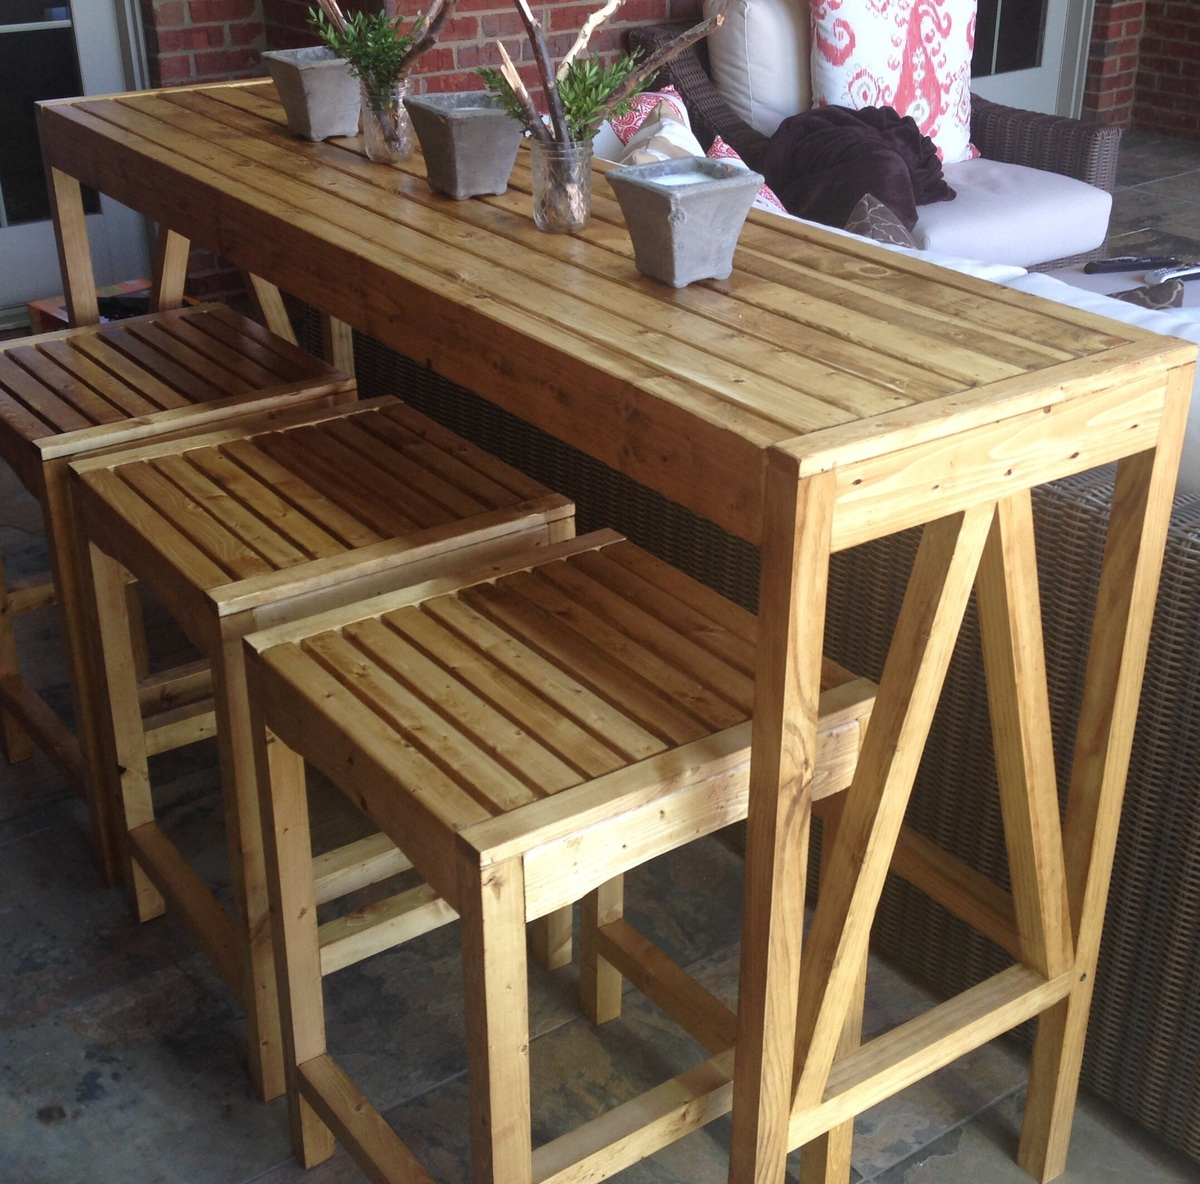 Ana White Sutton Custom Outdoor Bar Stools Diy Projects